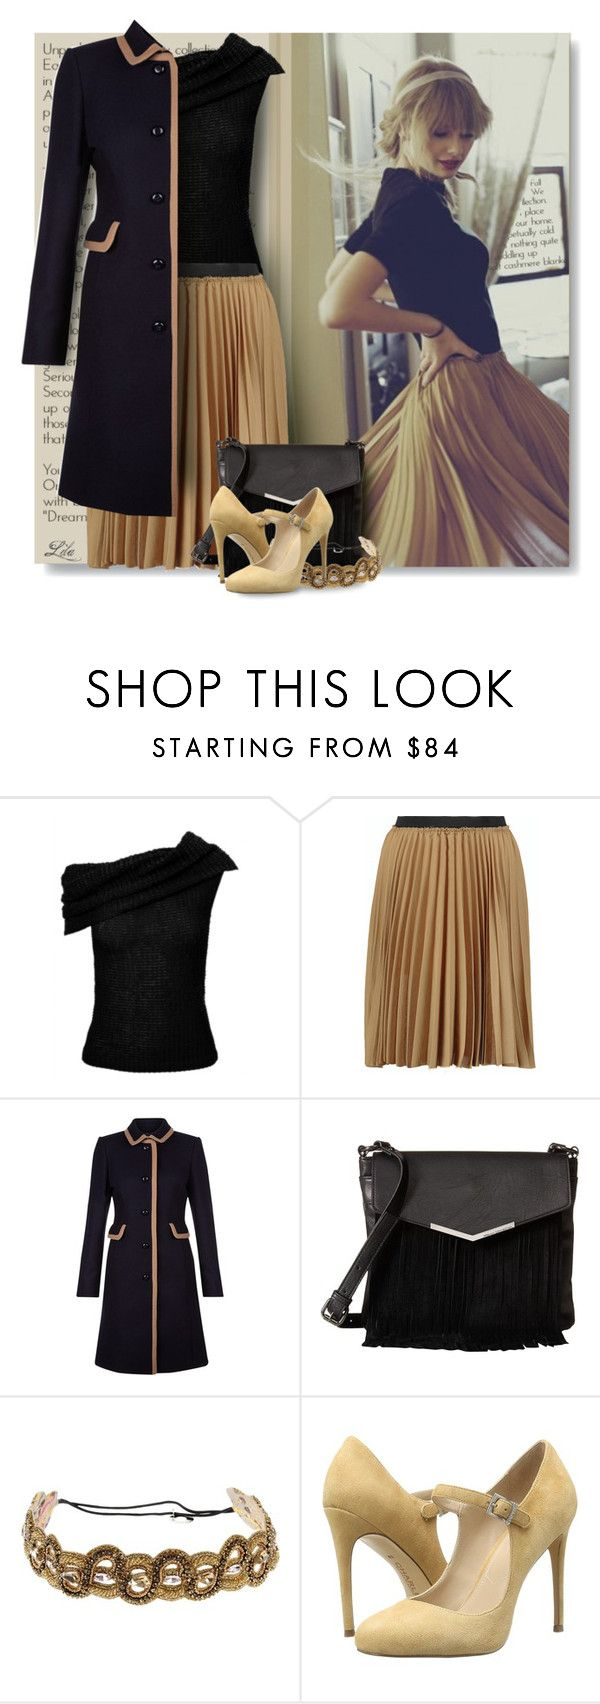 """""""*Sweet Mini Handbags"""" by breathing-style ❤ liked on Polyvore featuring Roland Mouret, Enza Costa, Hobbs, French Connection, Deepa Gurnani and Charles by Charles David"""